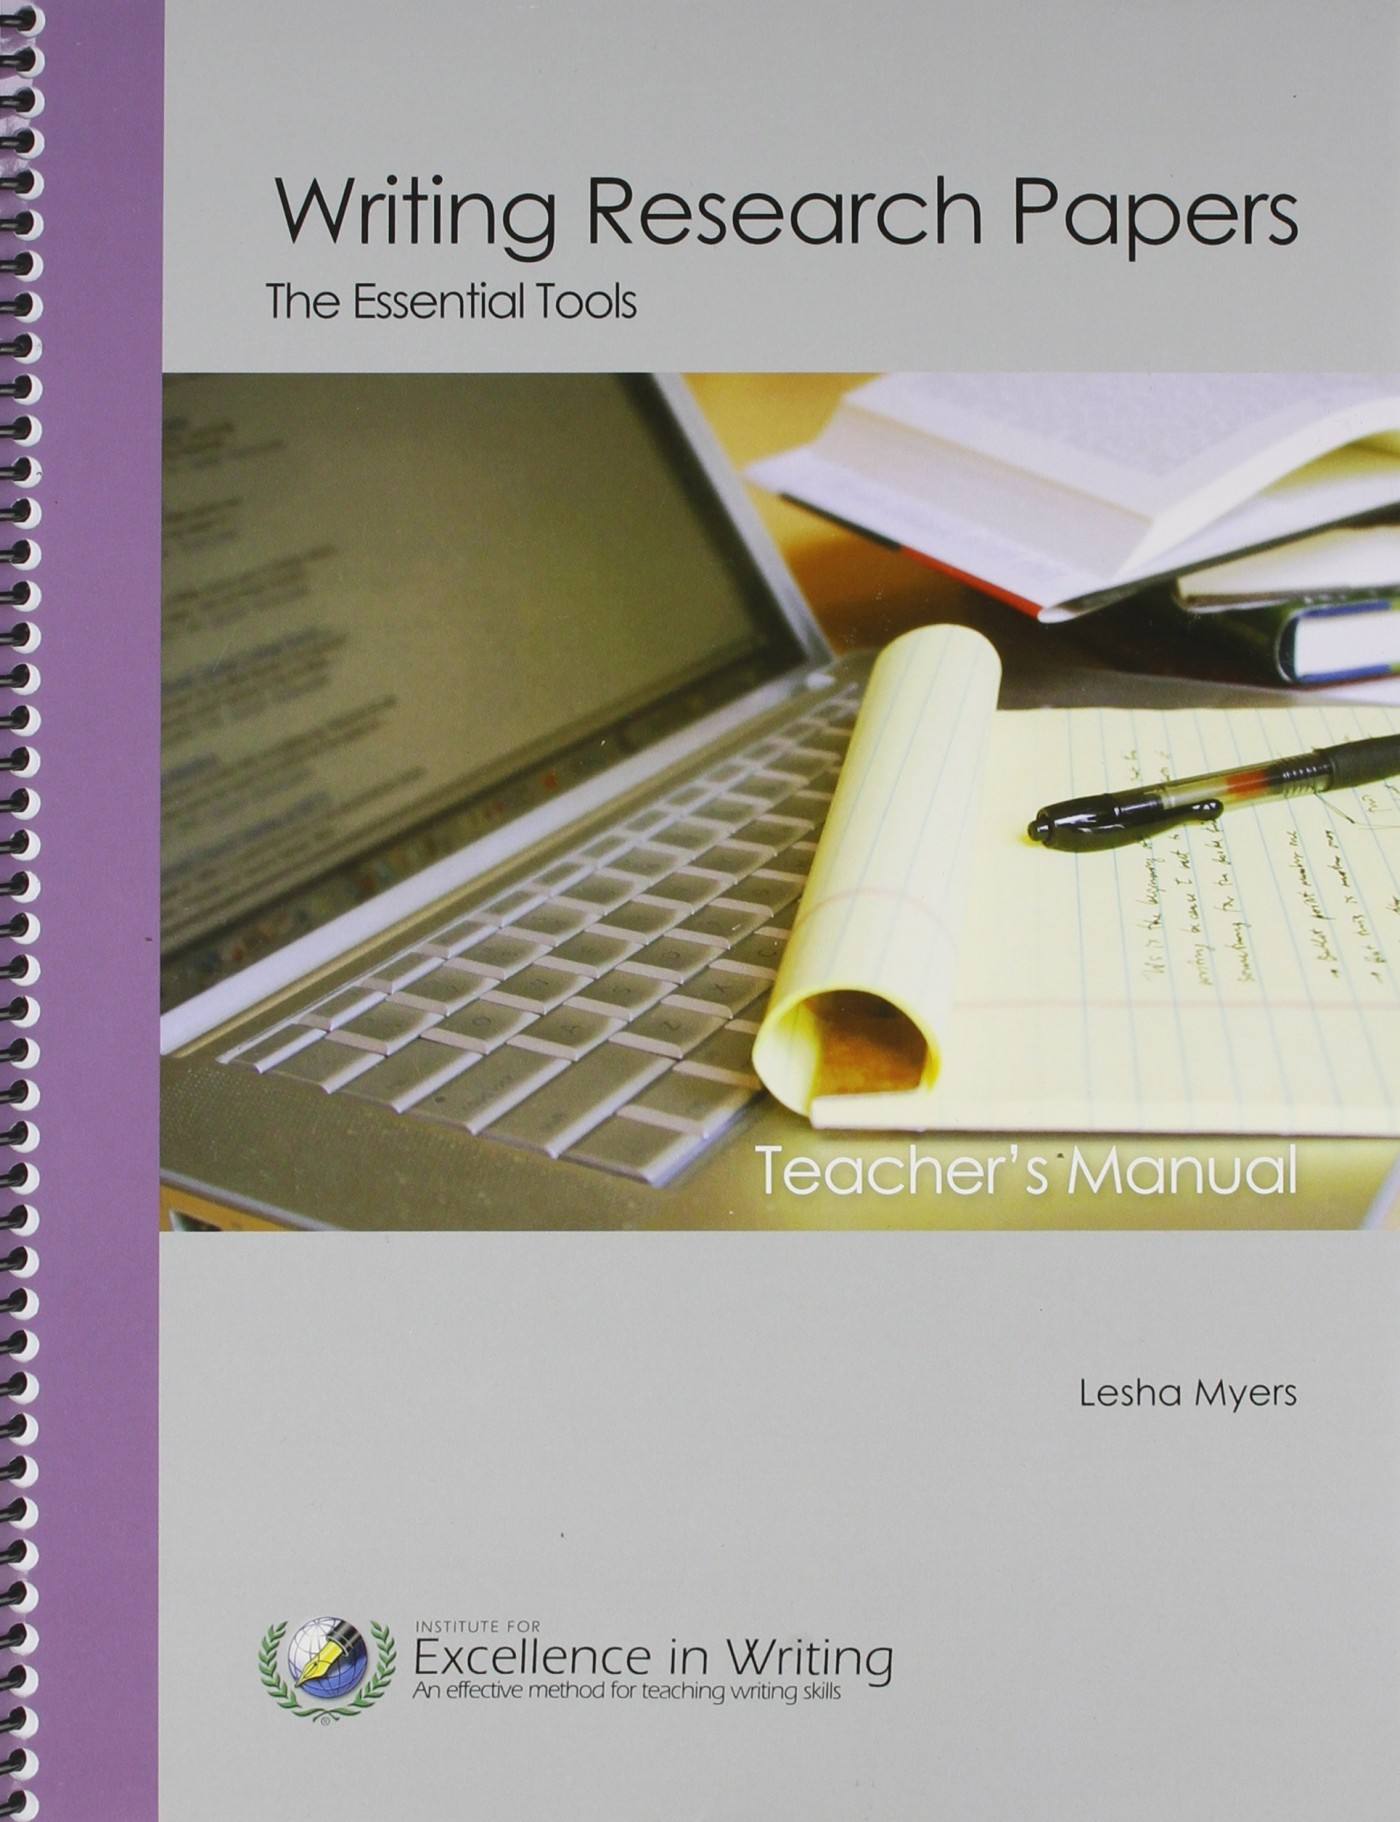 021 91ax63bn6xl Writing Research Striking Paper Papers Lester 16th Edition A Complete Guide James D. 1400